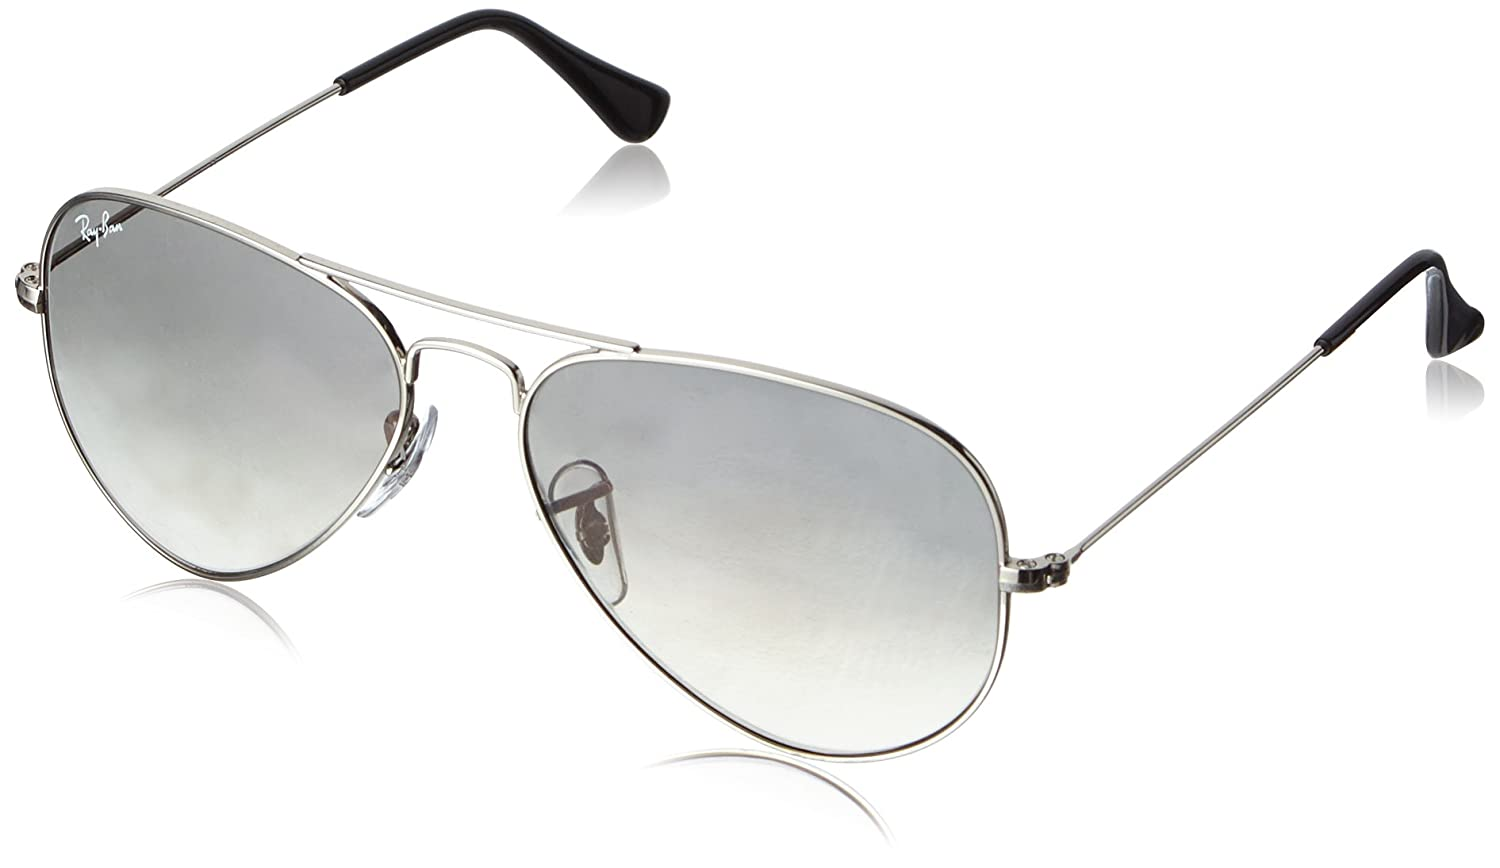 ray ban rb3025 iconic aviator sunglasses  amazon: ray ban 0rb3025 aviator metal non polarized sunglasses, silver/ crystal grey gradient, 55mm: ray ban: clothing